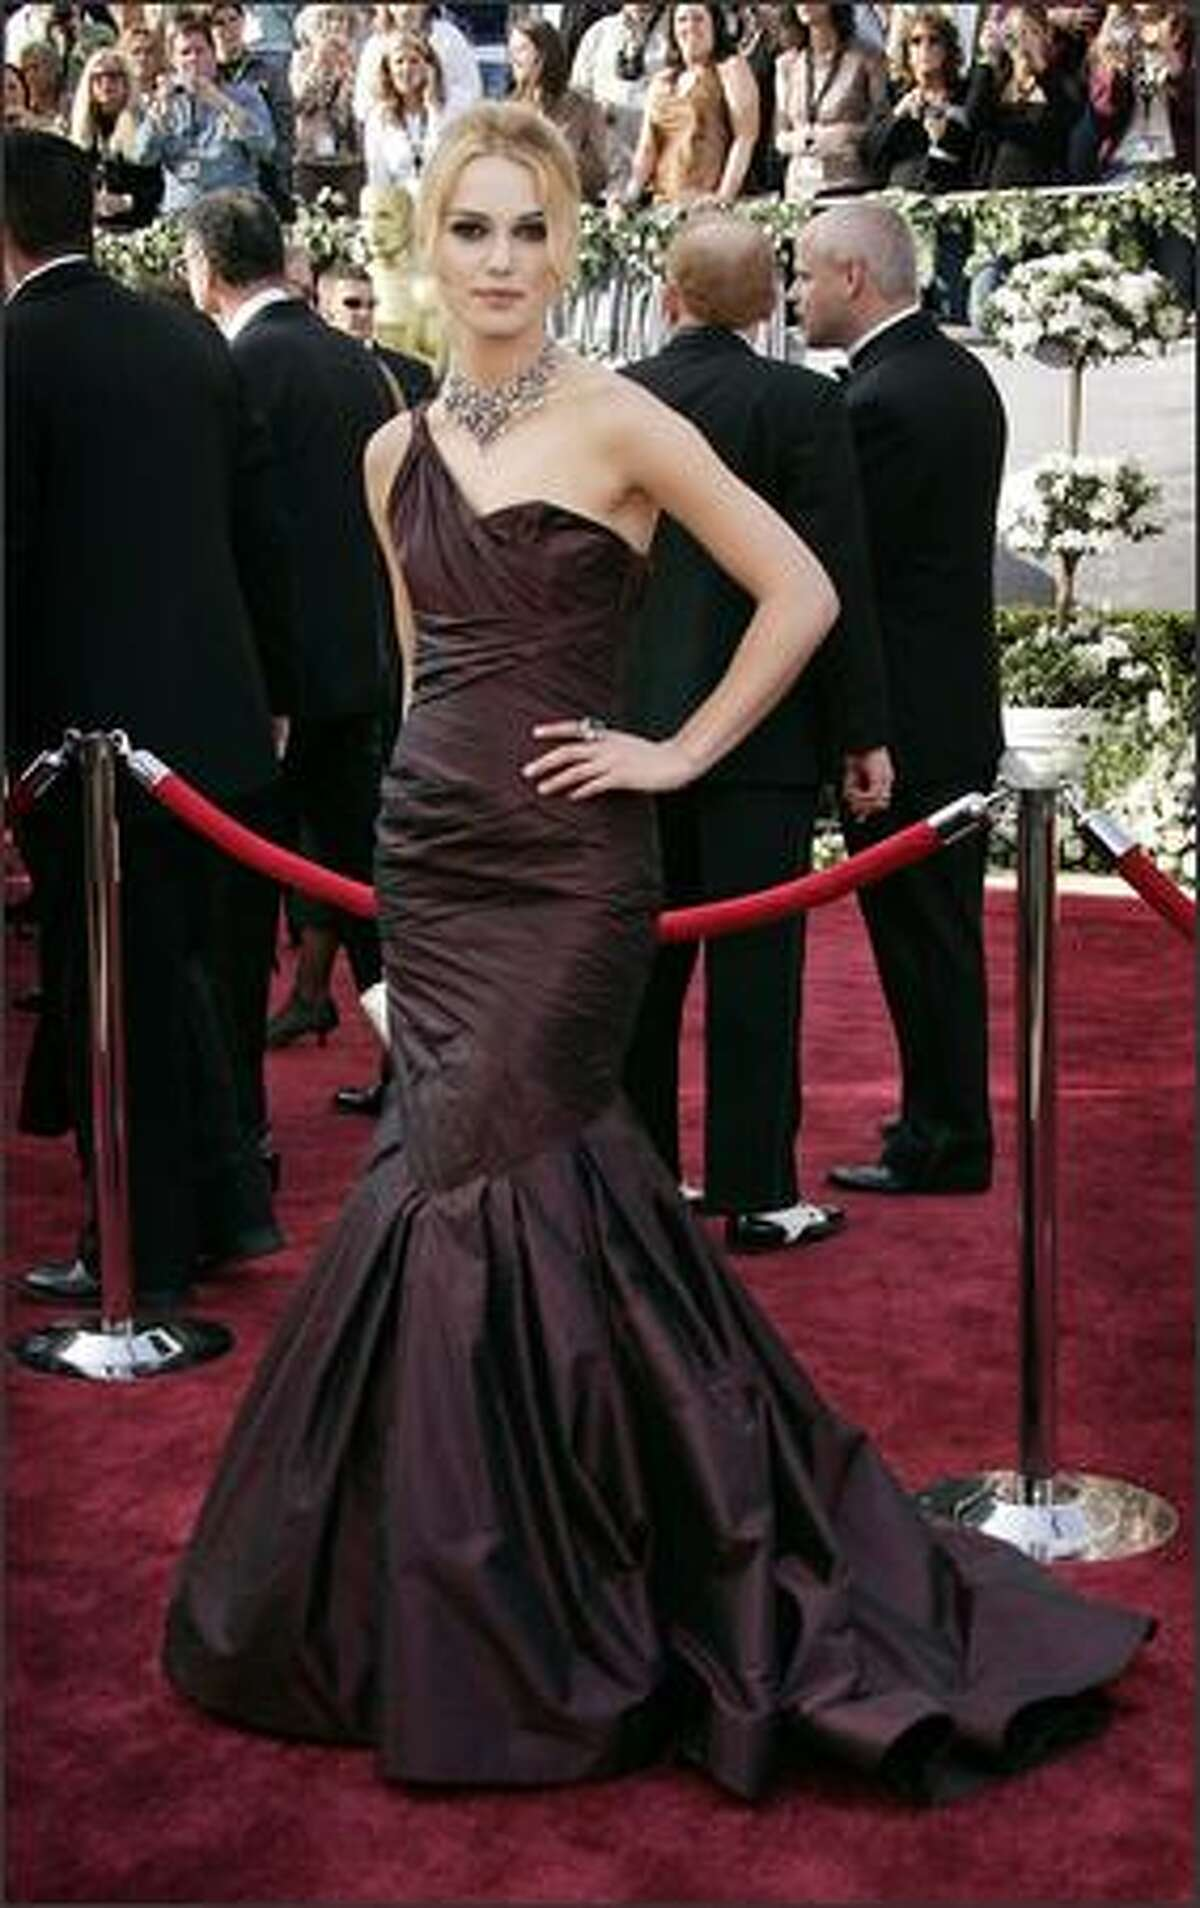 """British actress Keira Knightley, nominated for an Oscar for best actress in a leading role for her work in """"Pride & Prejudice,"""" arrives for the 78th Academy Awards Sunday, March 5, 2006, in Los Angeles. (AP Photo/Kevork Djansezian)"""